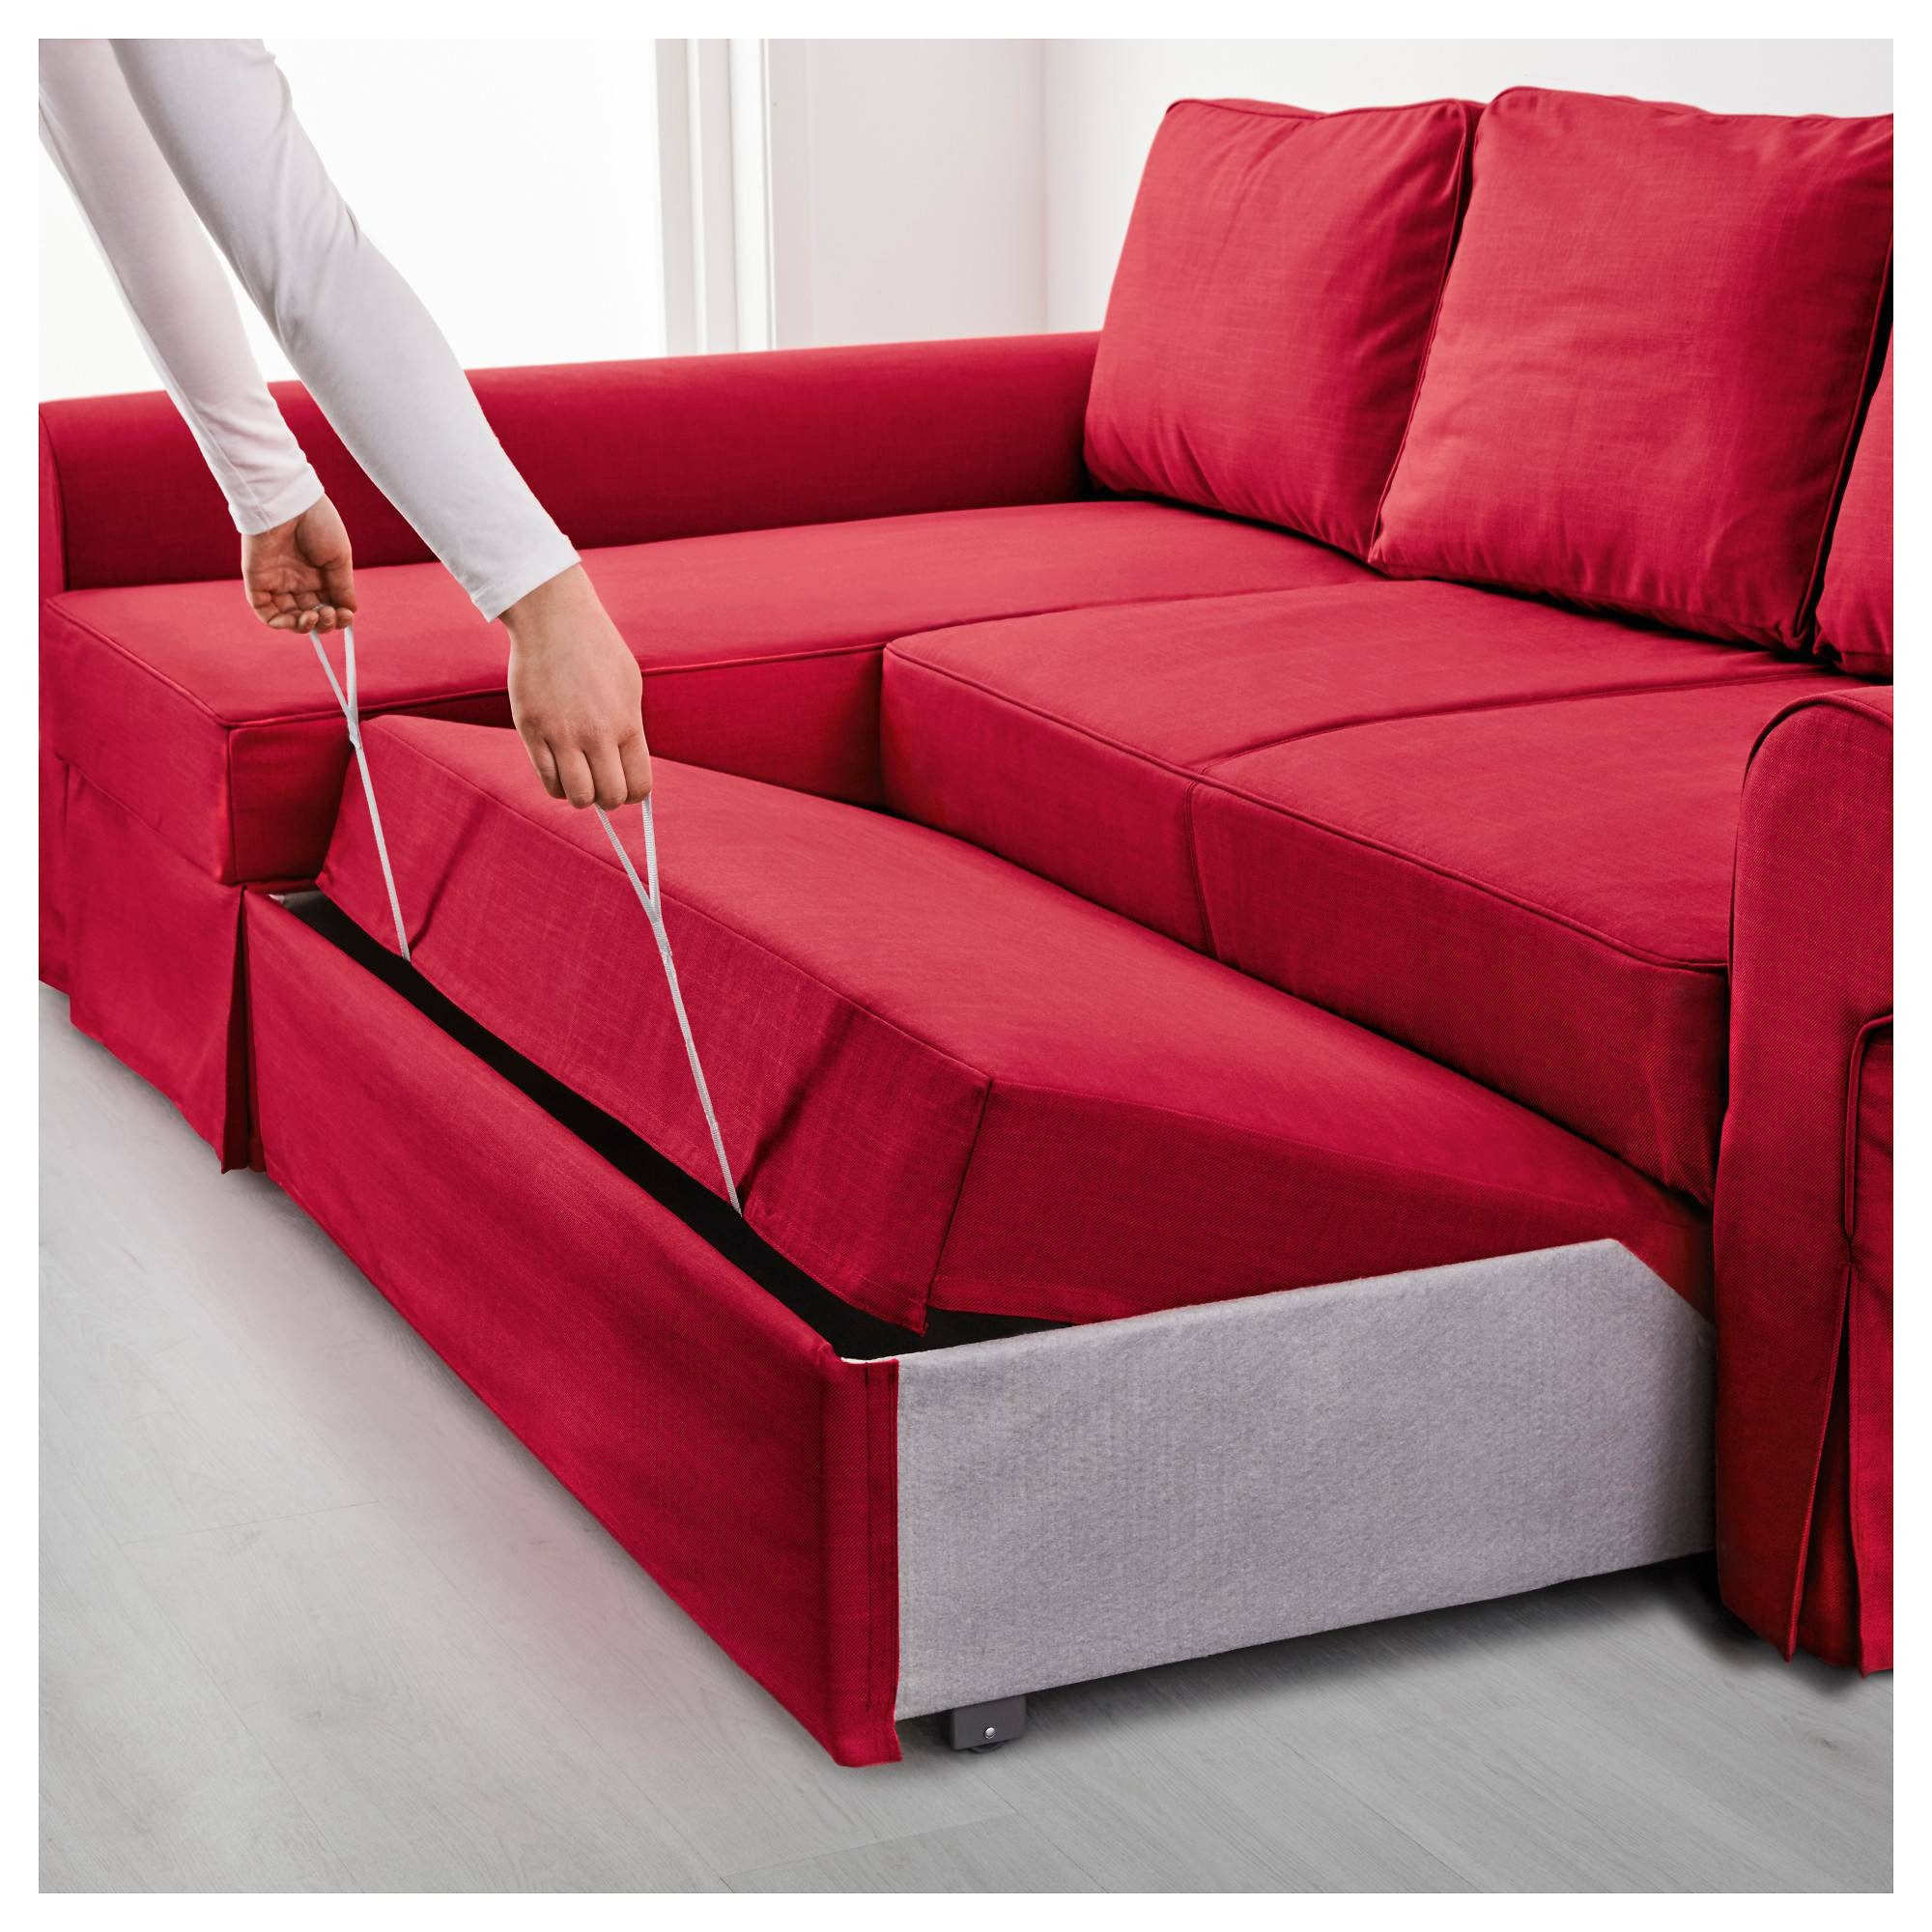 Best ideas about Red Sofa Beds . Save or Pin 2018 Latest Red Sofa Beds Ikea Now.